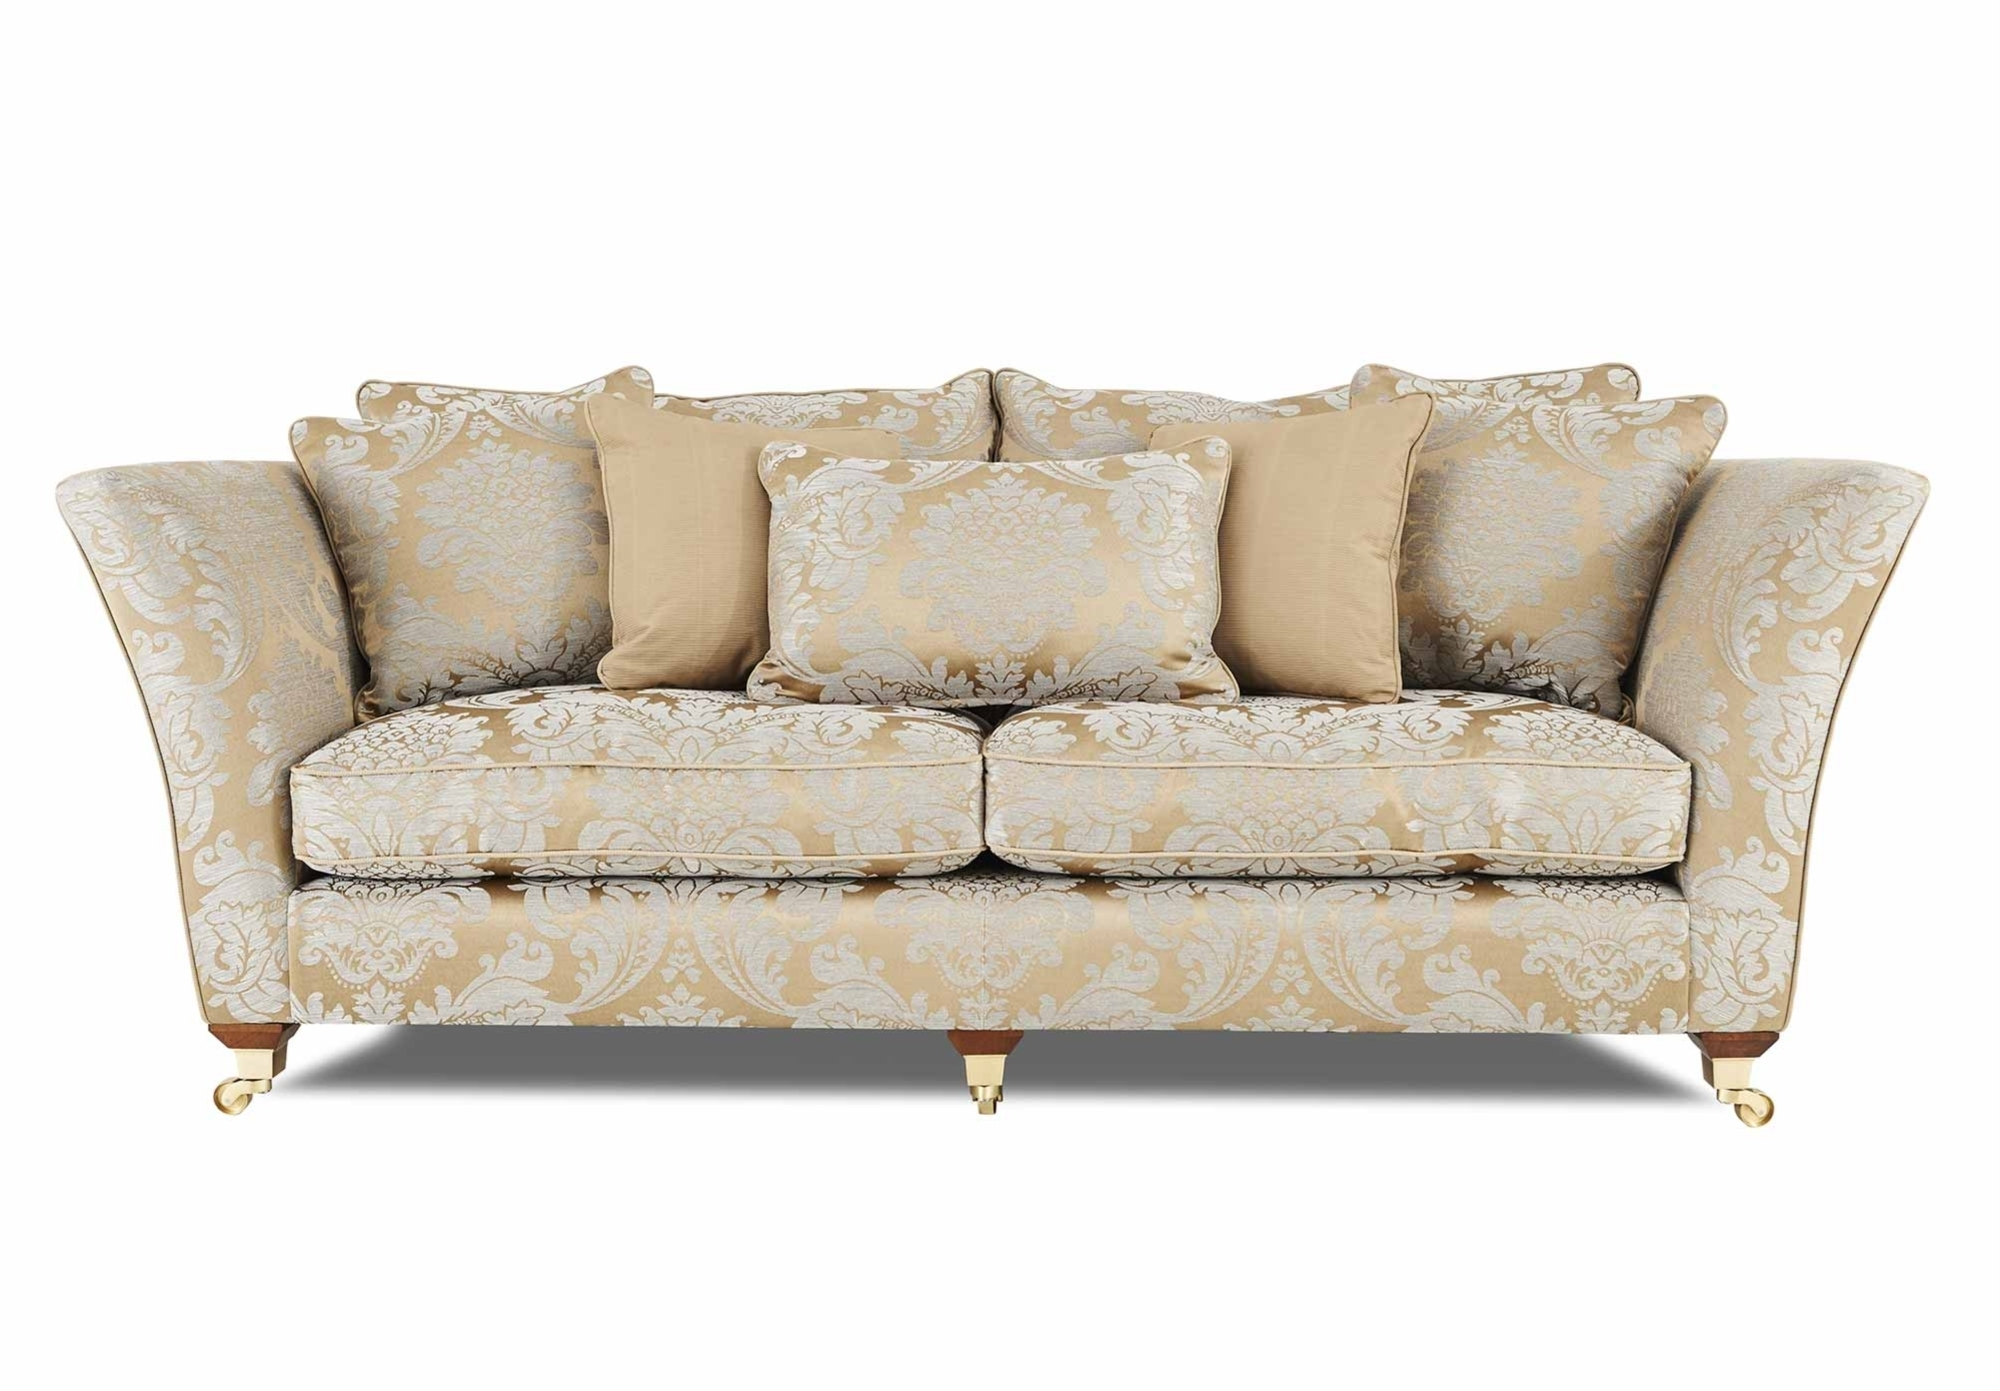 Widely Used Furniture : Contemporary Modern Tufted Sofa Delano 120 Tufted In Kitchener Sectional Sofas (View 14 of 15)